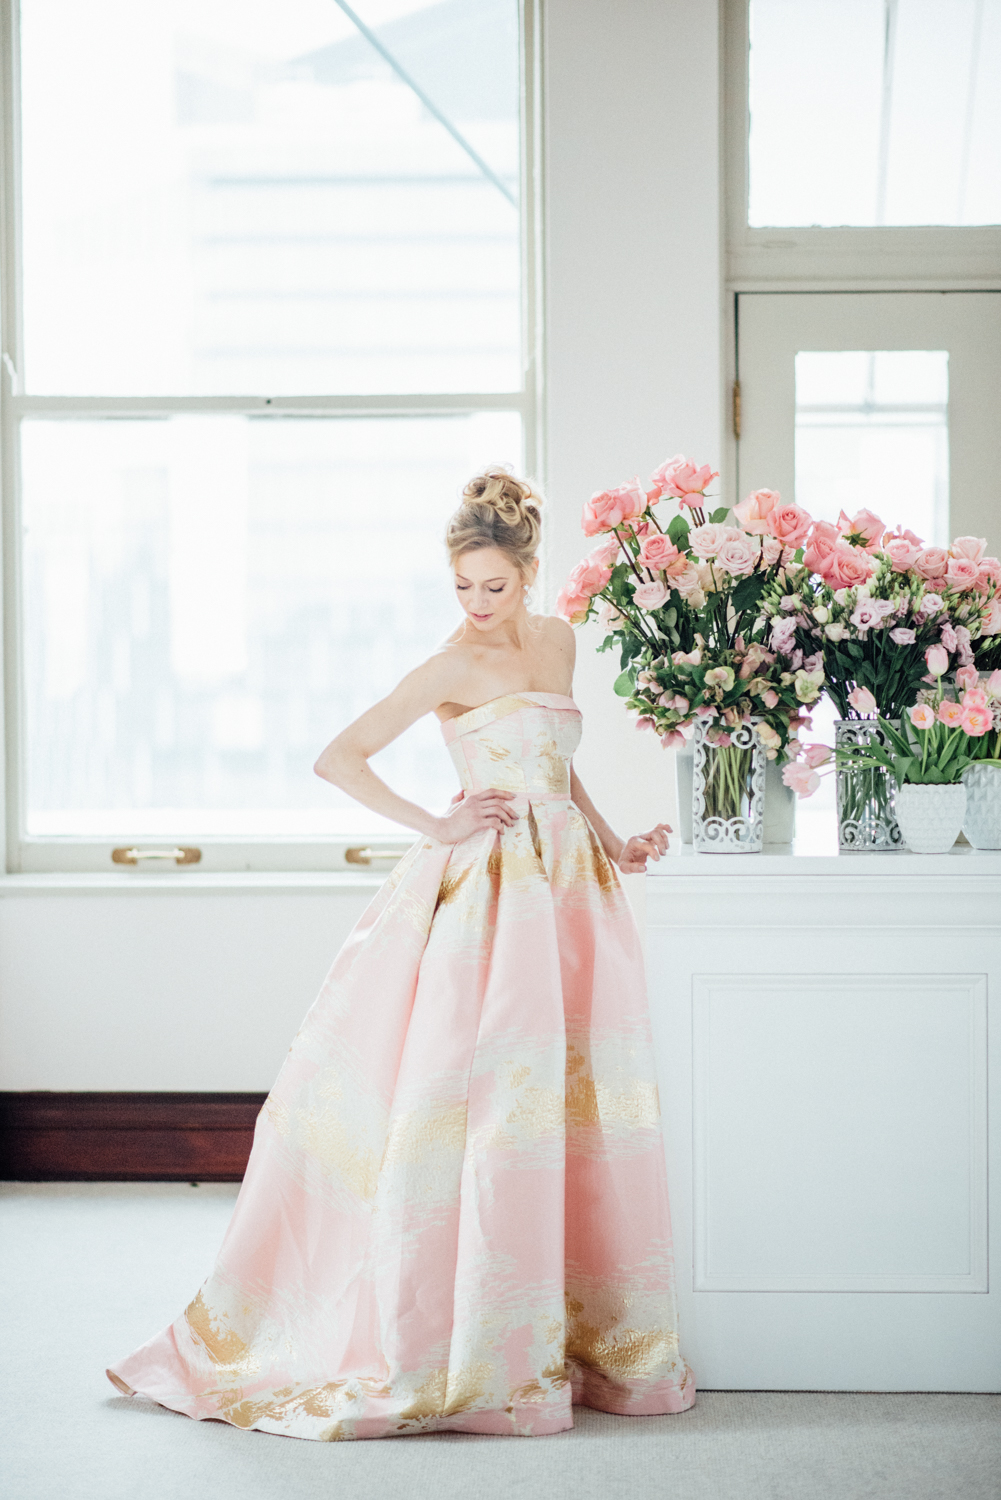 LA VIE EN ROSE STYLED SHOOT